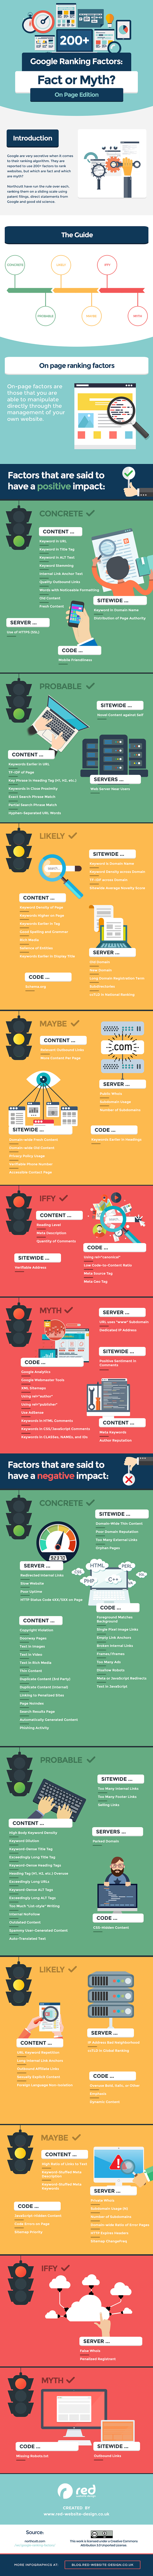 Infographie 257 - SEO truths and myths